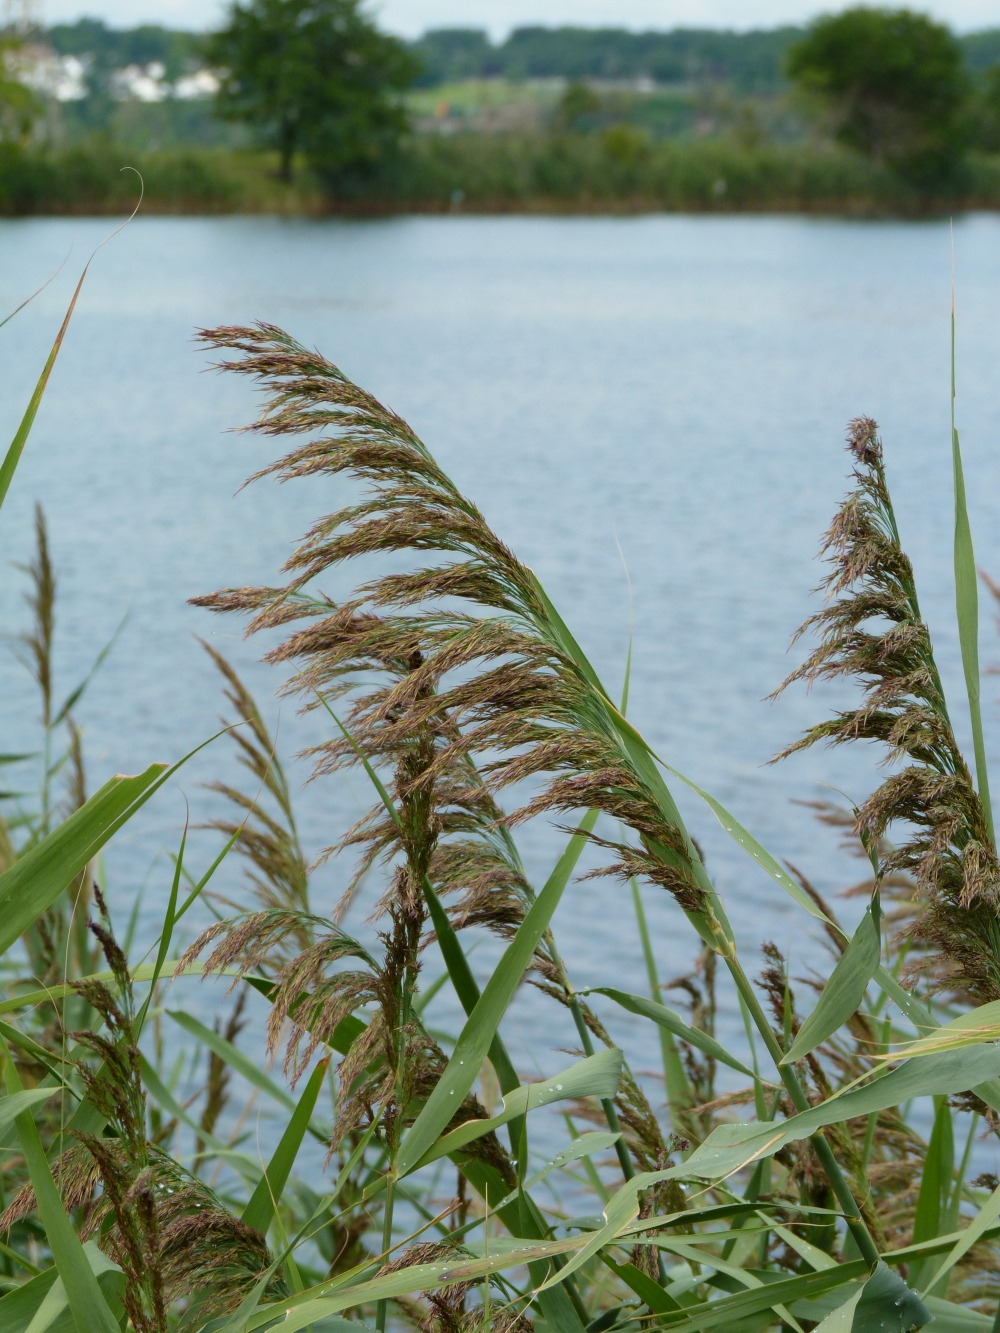 Phragmites (Common Reed) - Perennial wetland grass that grows 3-20' tall with dull, very slightly ridged, stiff, and hollow stems. Create dense clones where canes remain visible in winter.